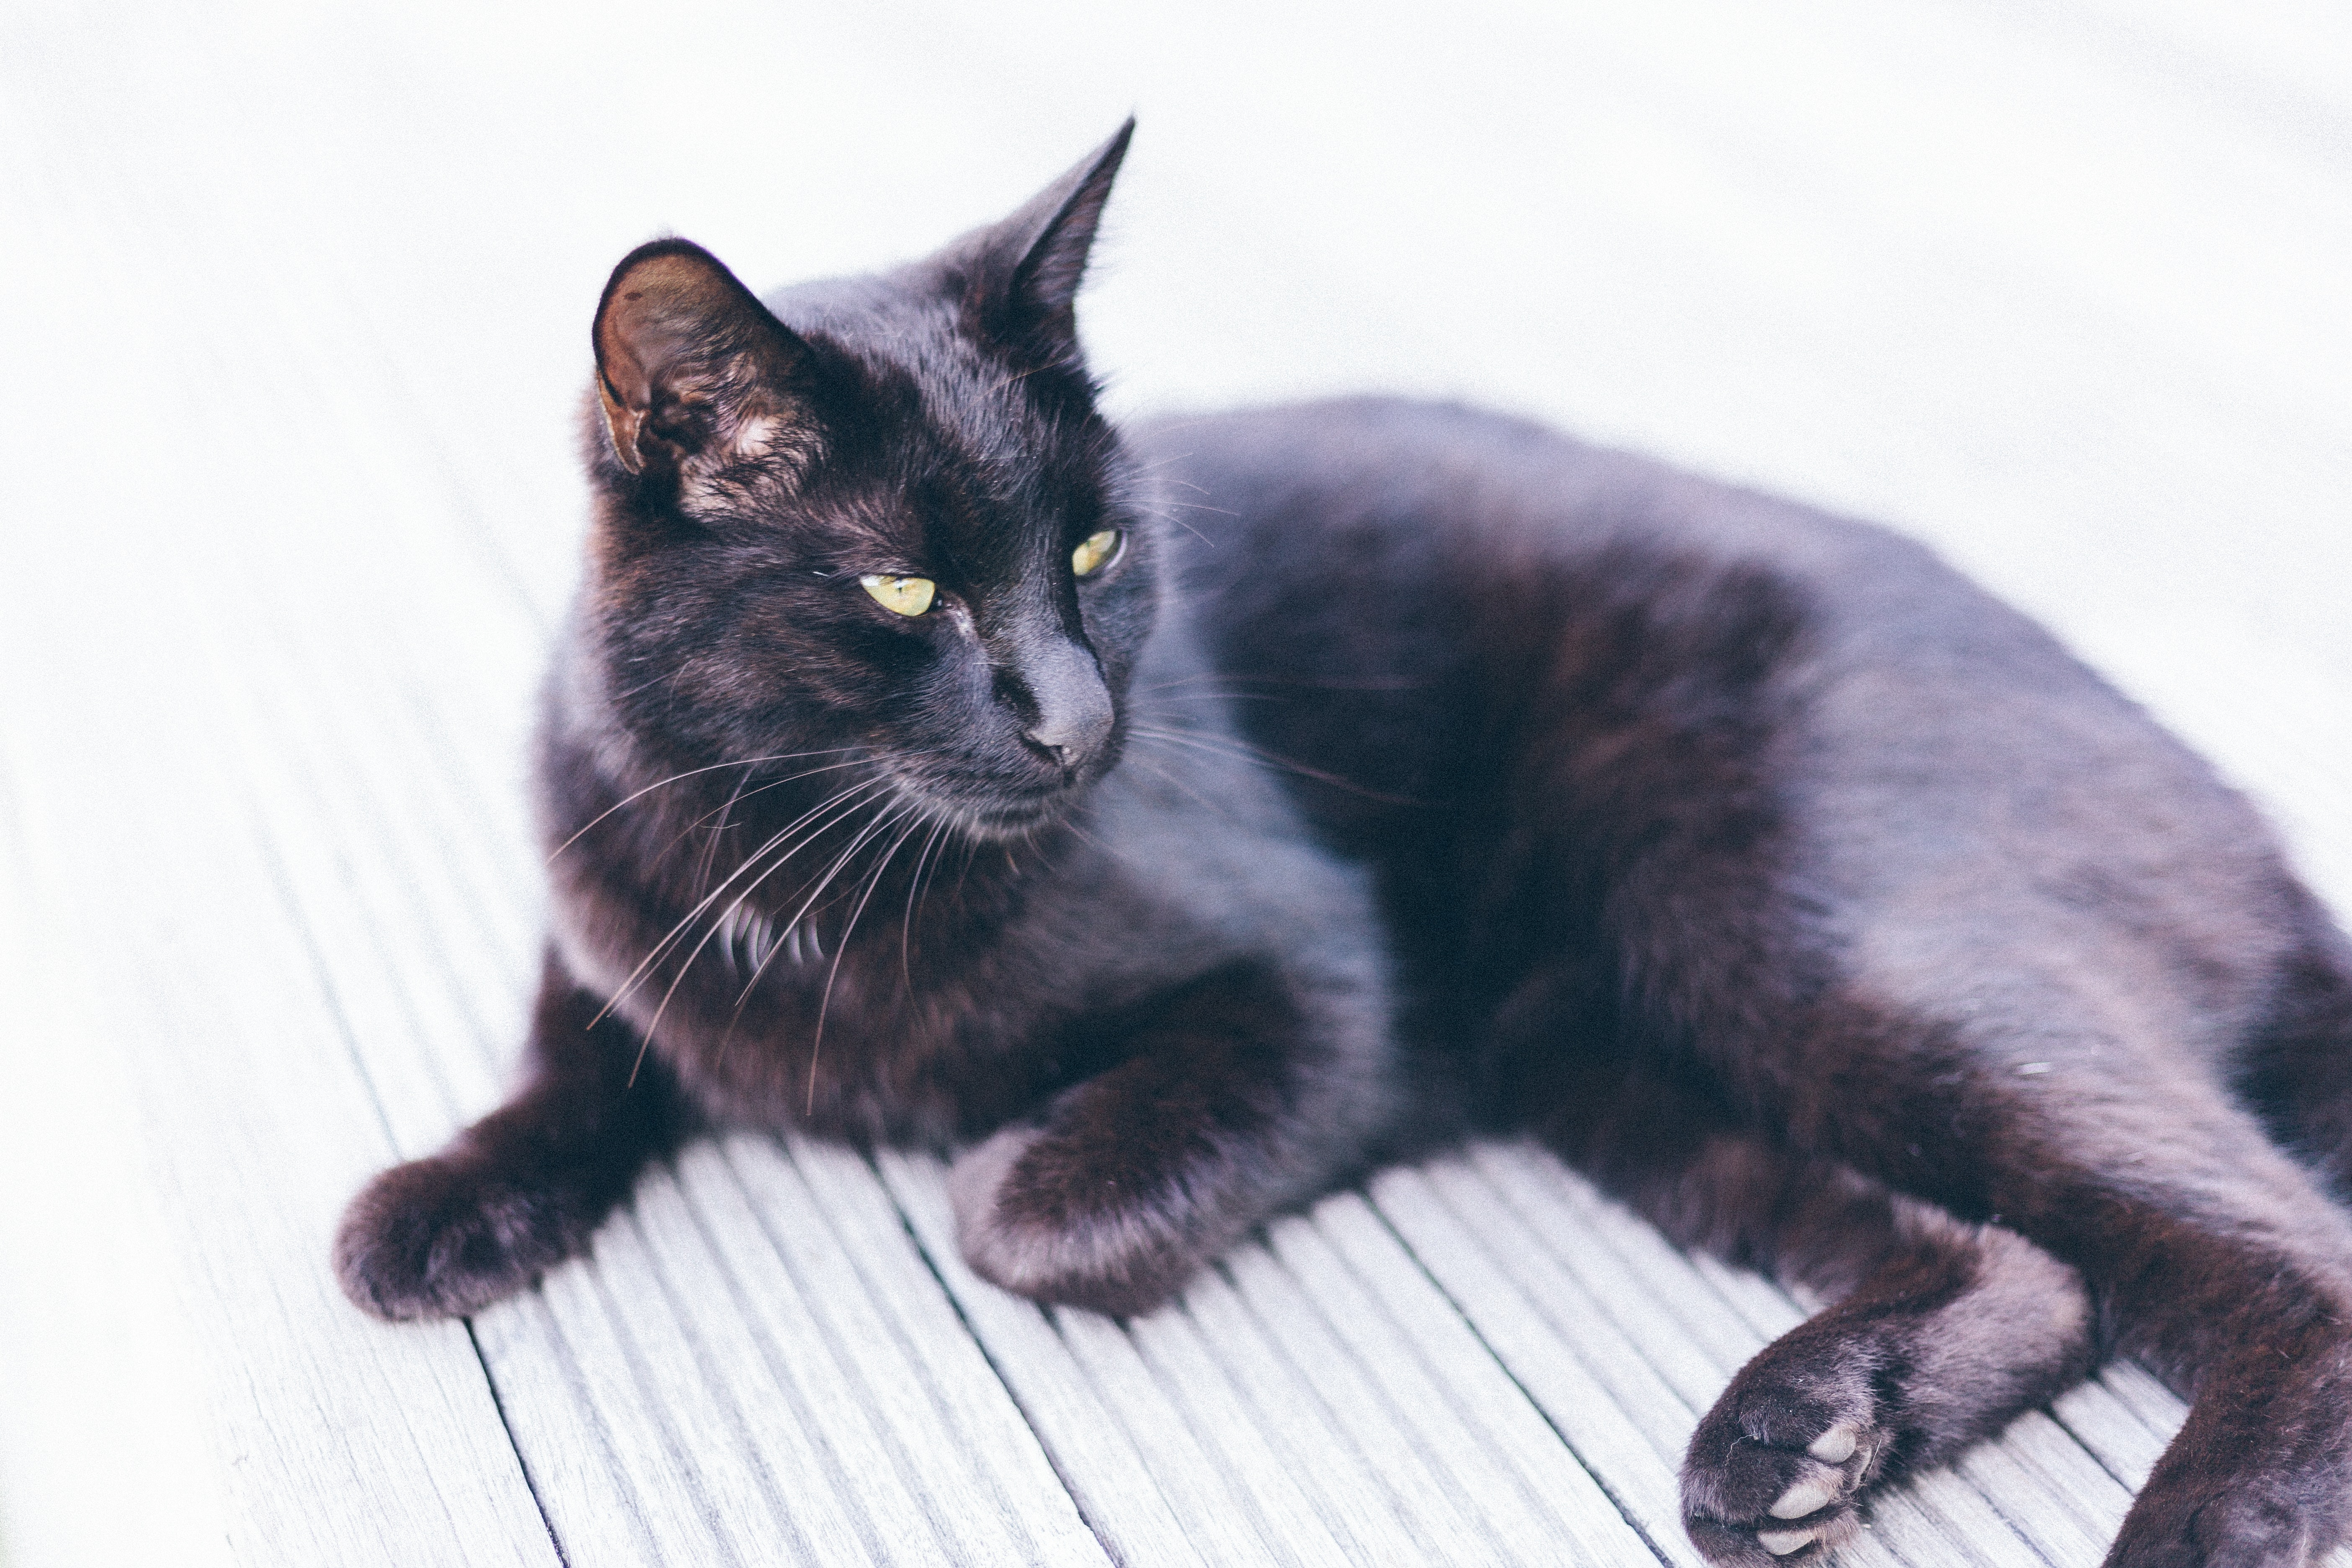 Bombay Cat on Grey Ground, Adorable, Kitten, Whiskers, Whisker, HQ Photo